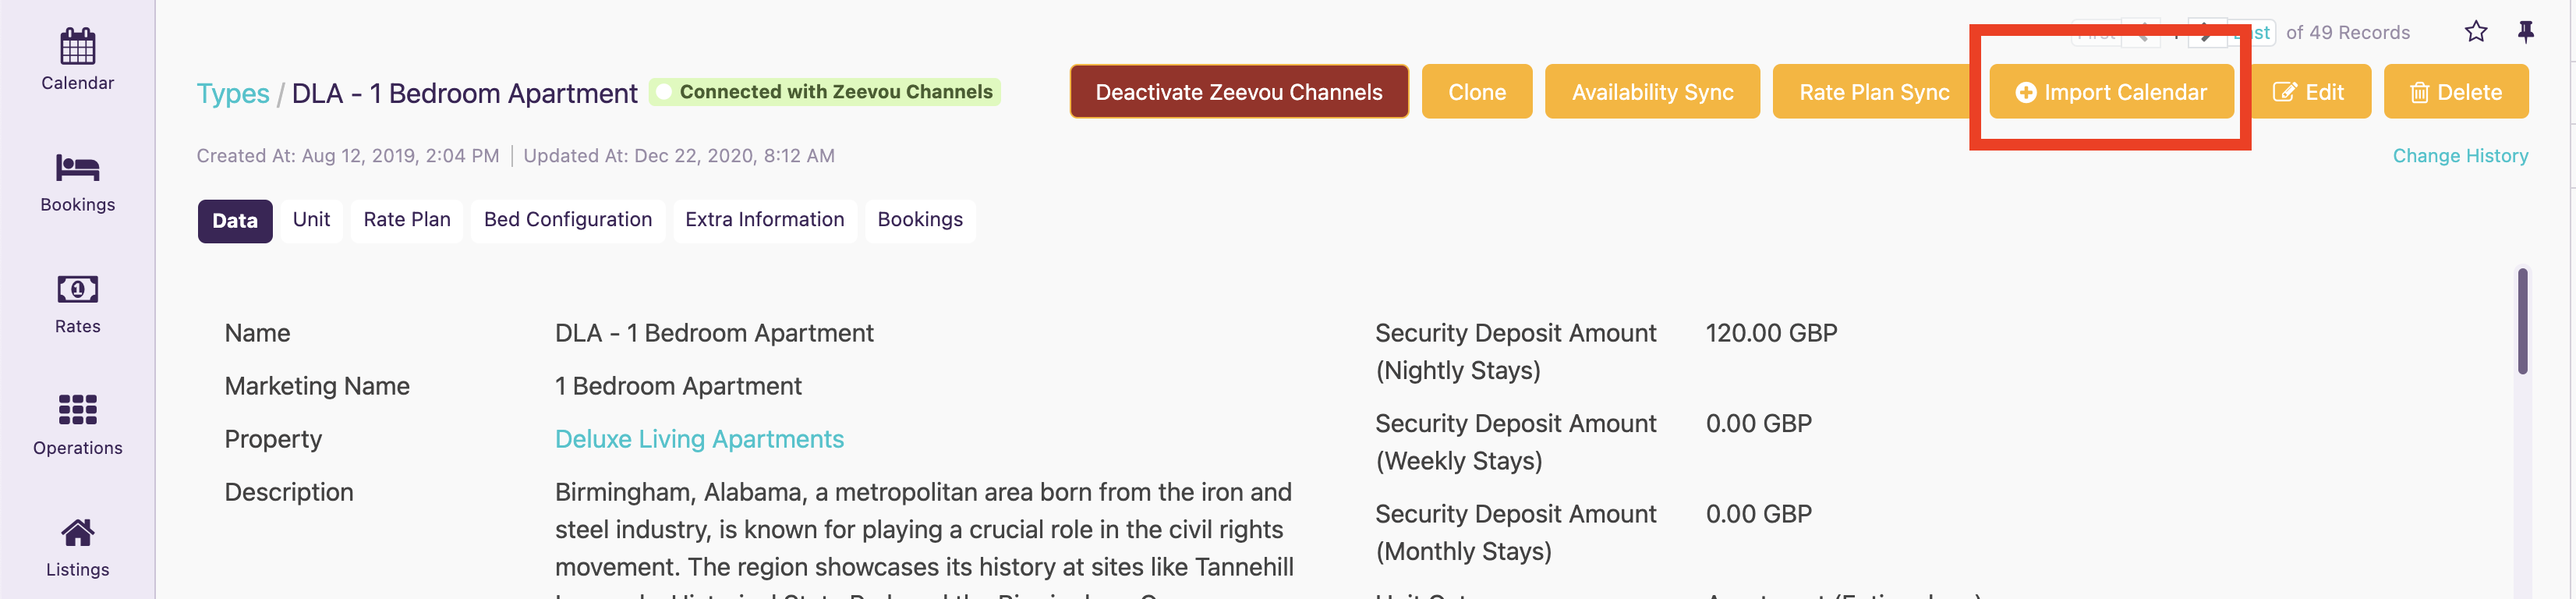 Connect to a Channel via iCal Link Zeevou